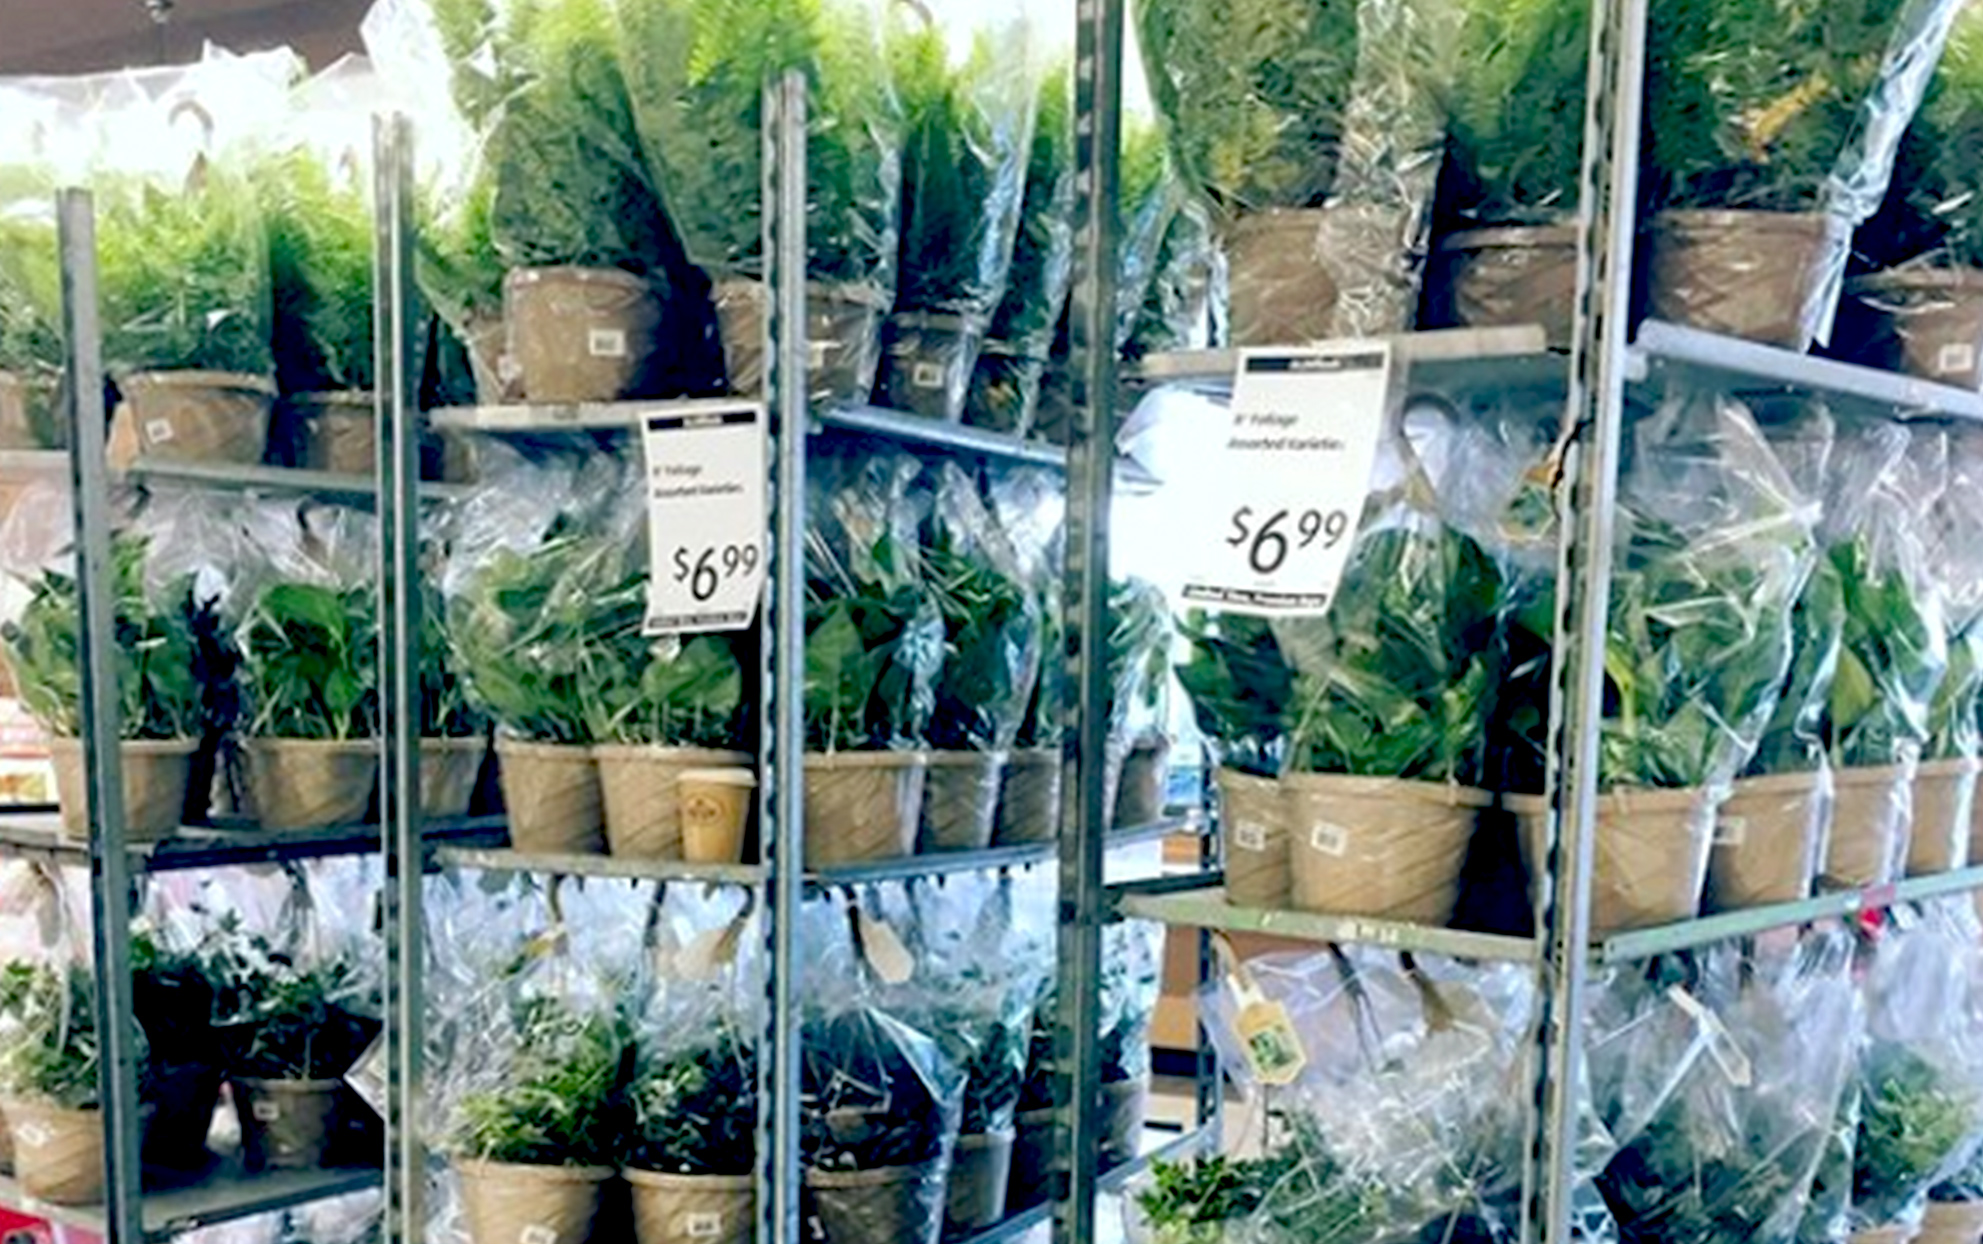 Carts of plants for sale at an Aldi's store